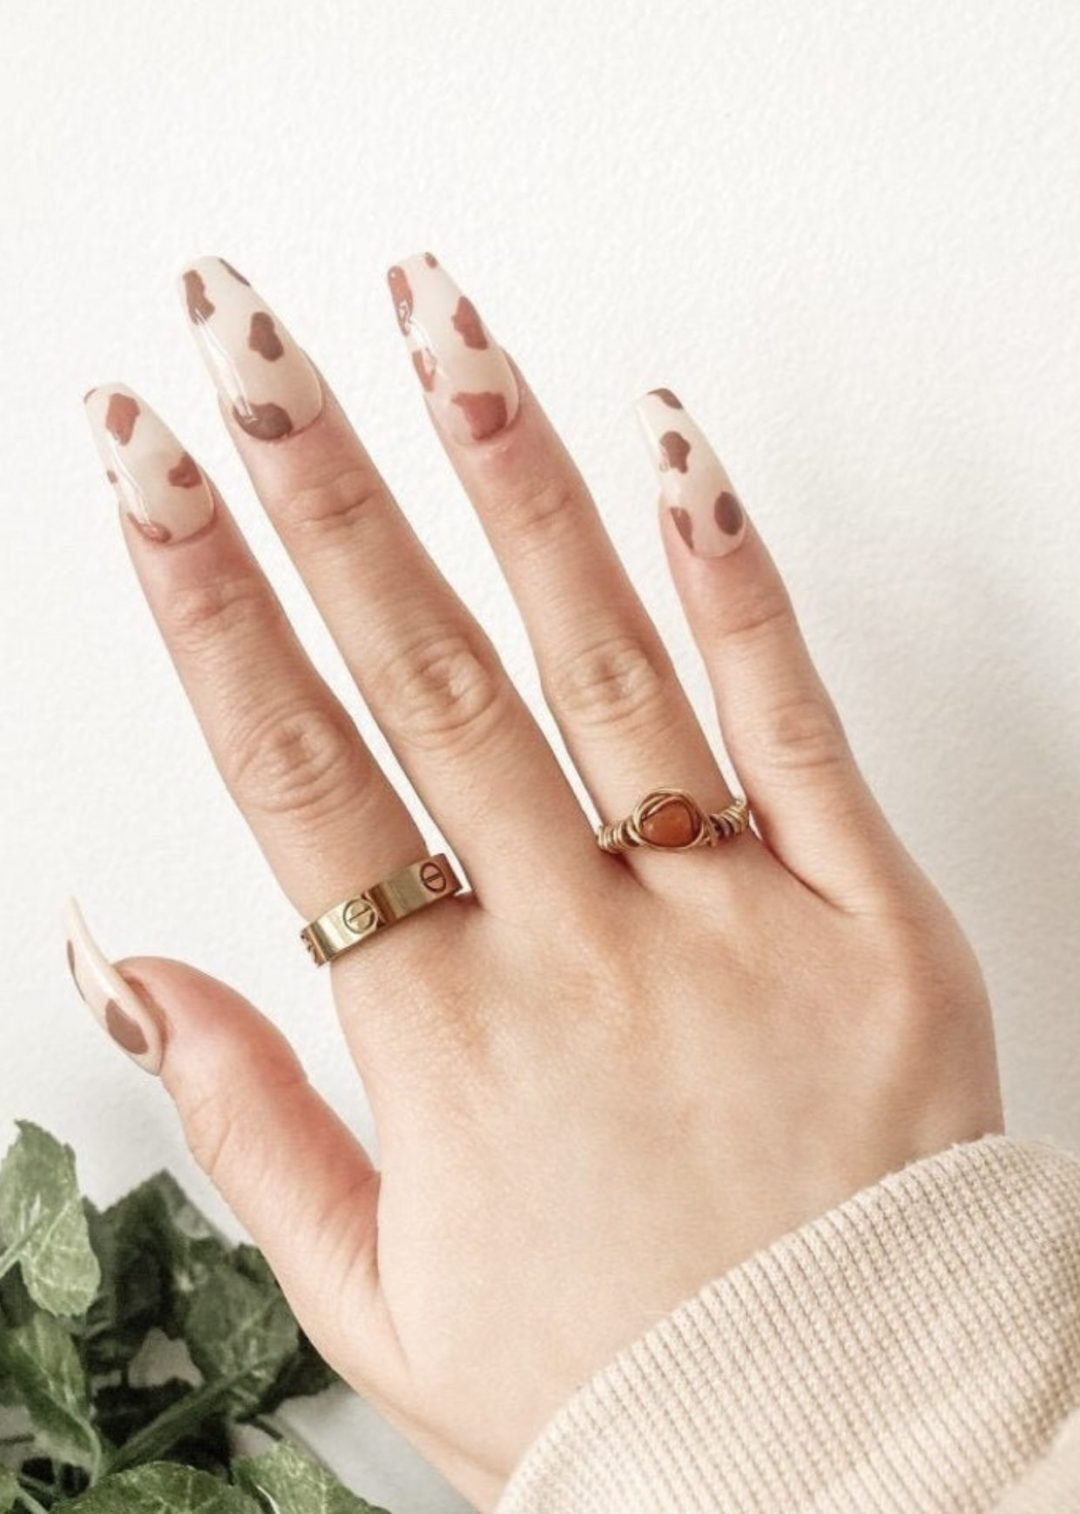 Light brown cow nails with negative space